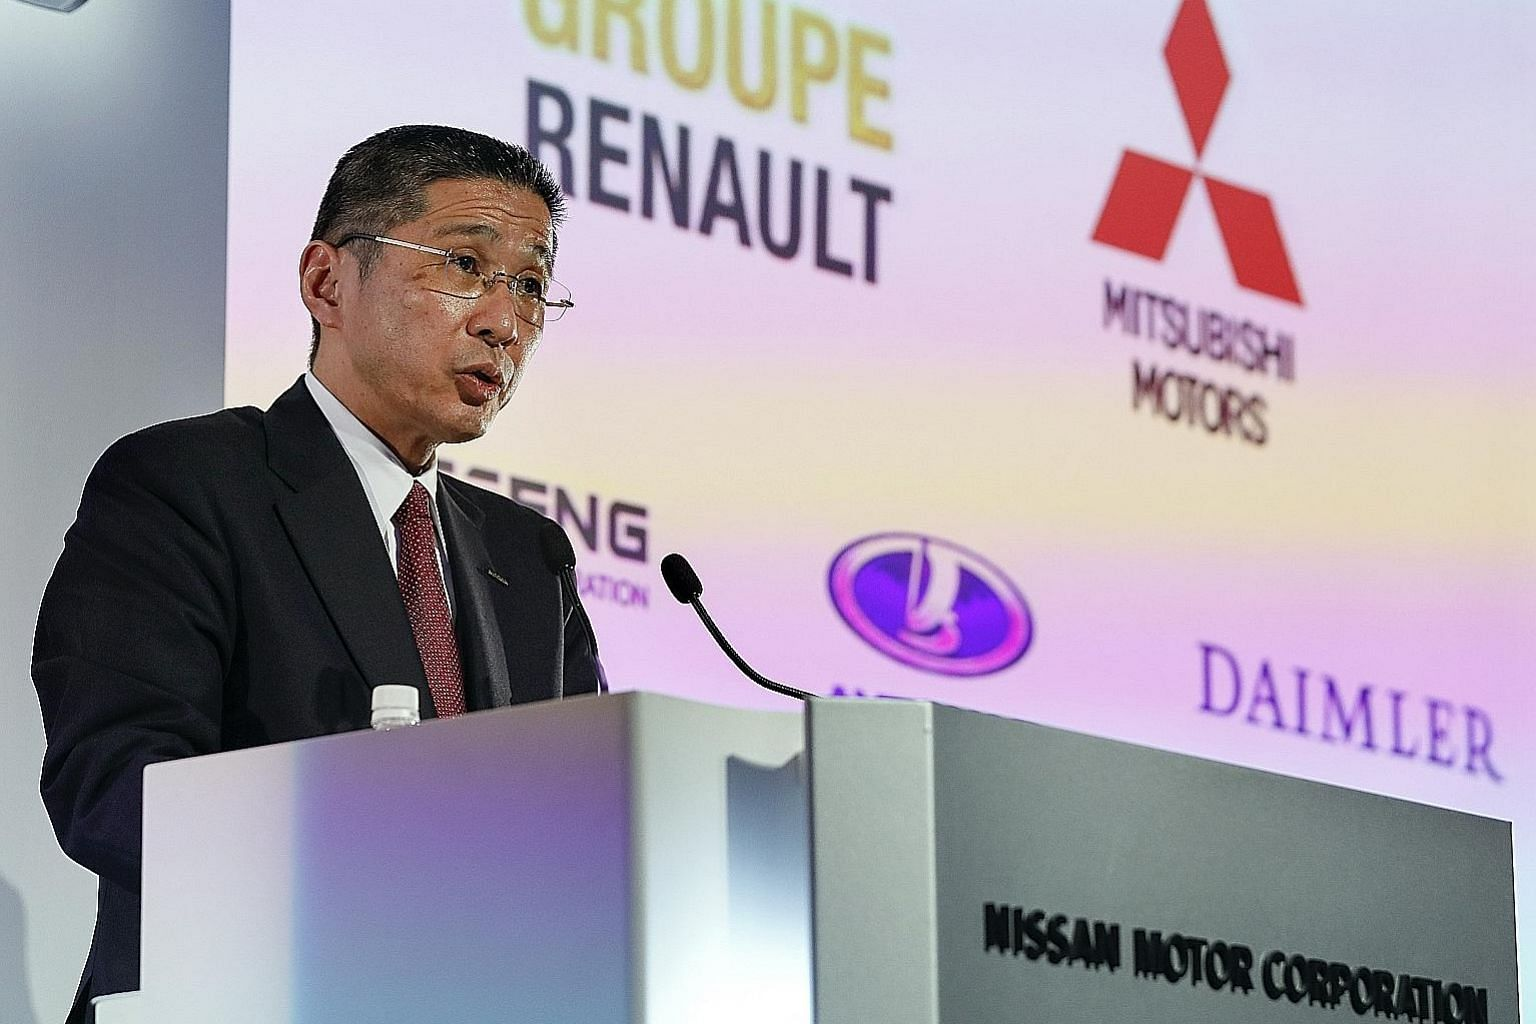 Nissan chief executive Hiroto Saikawa said he wanted to preserve the spirit of equality in the alliance with Renault. PHOTO: EPA-EFE